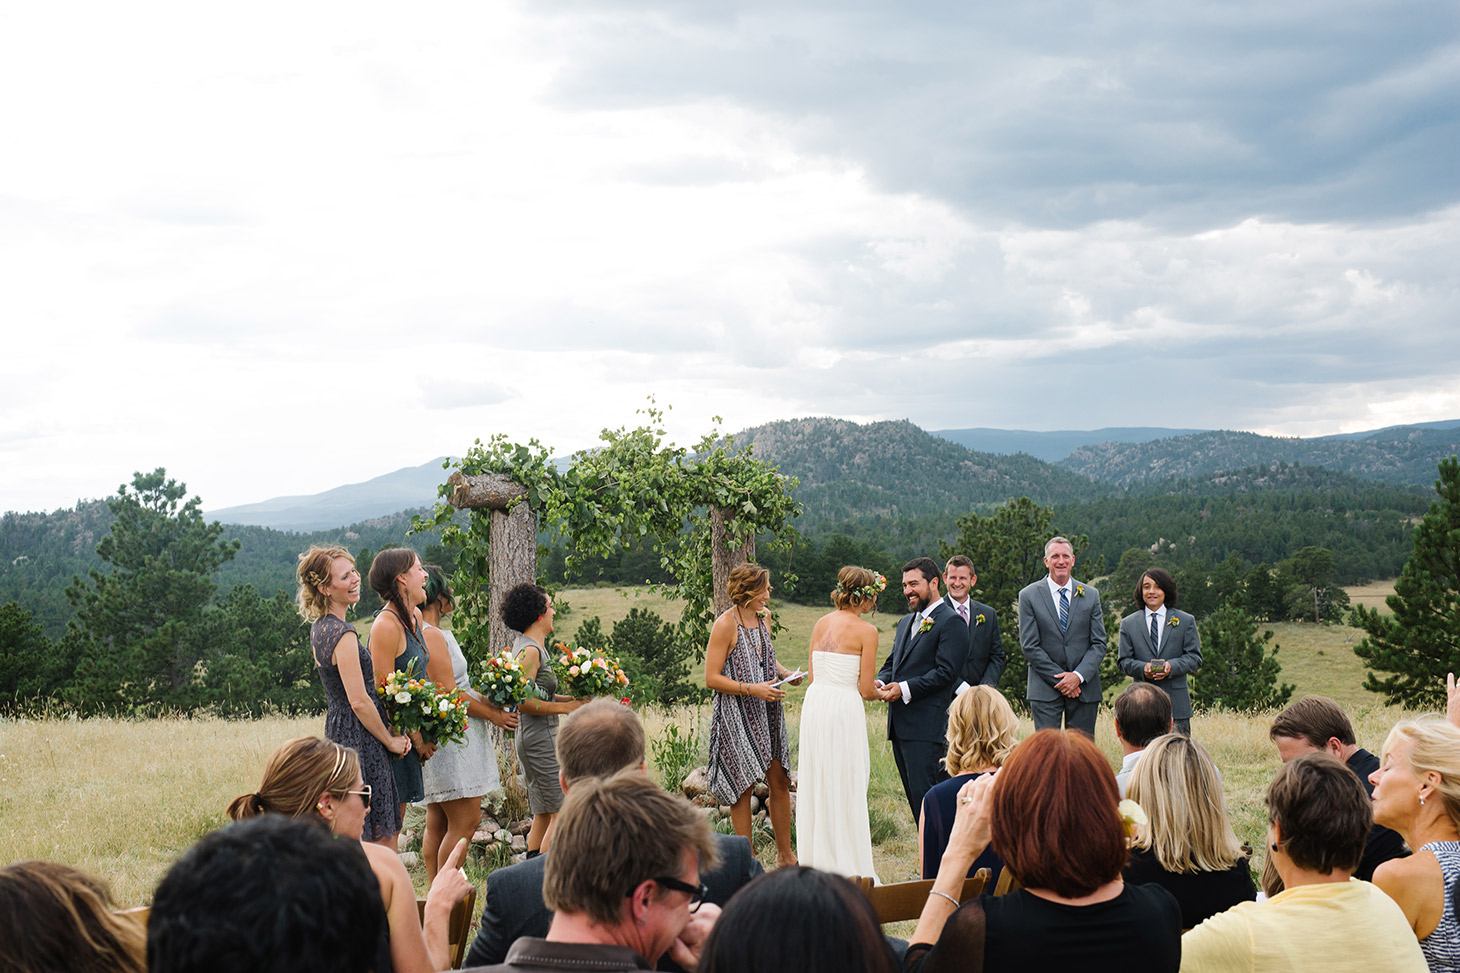 Megan-Newton-Photography-Best-Wedding-Photos-2015-331